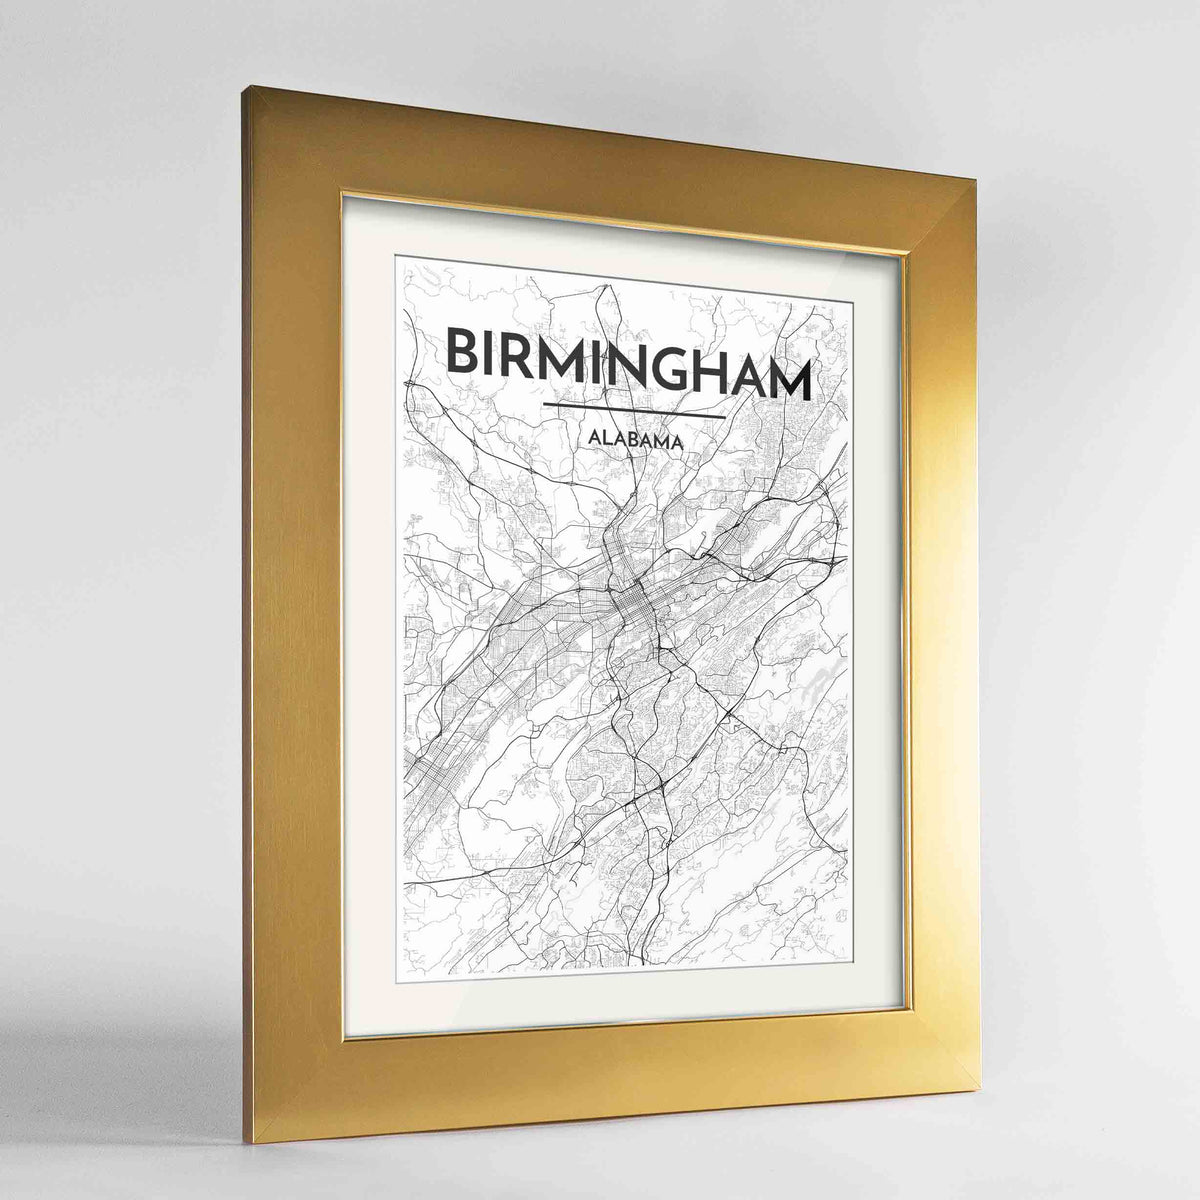 "Framed Birmingham - Alabama Map Art Print 24x36"" Gold frame Point Two Design Group"